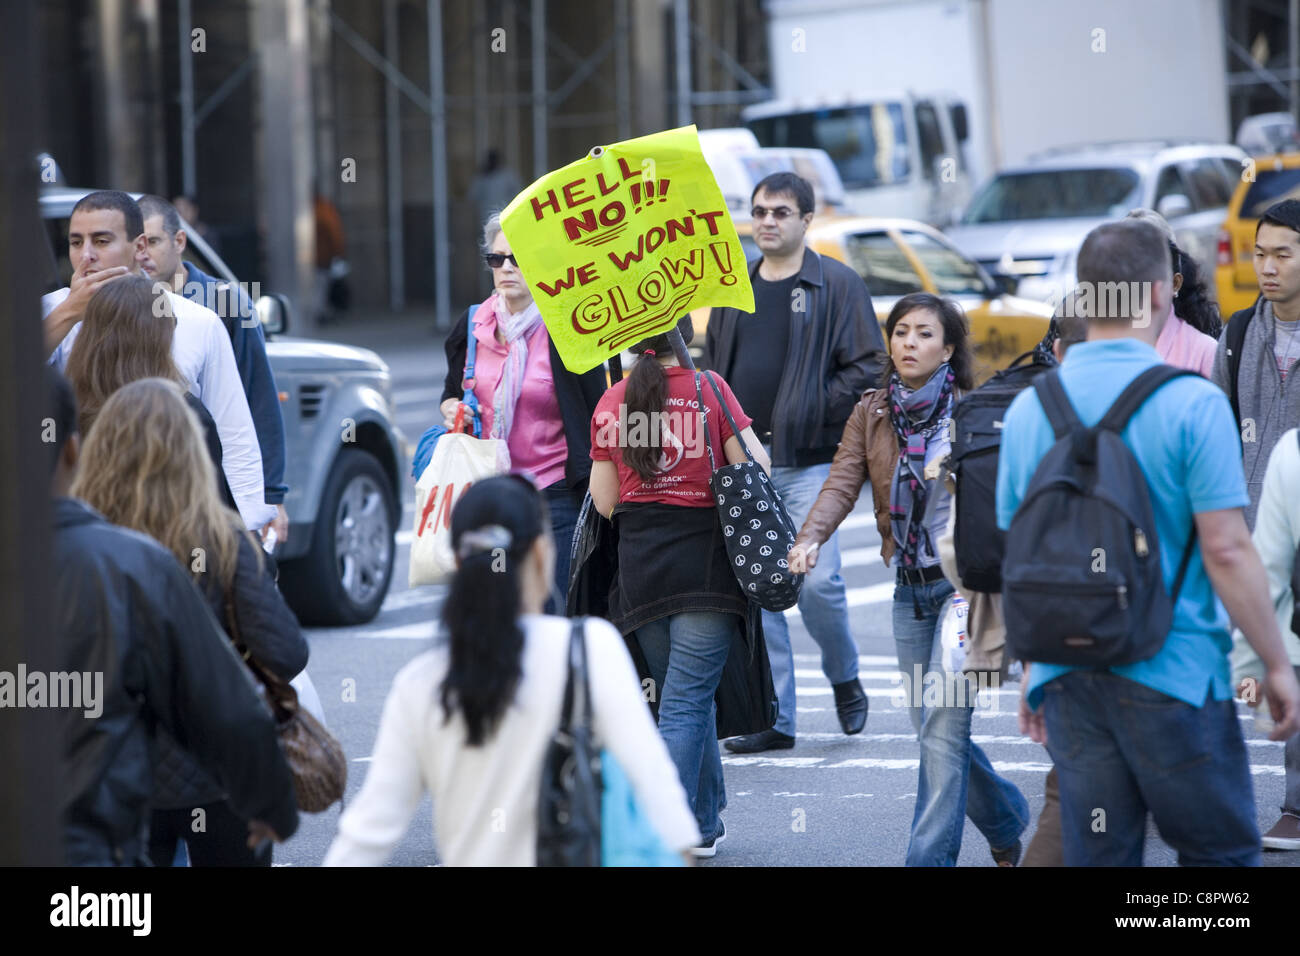 Woman activist,  walking on 42nd St. to A 'Shut Down Indian Point Nuclear Power Plant' rally in NYC. - Stock Image